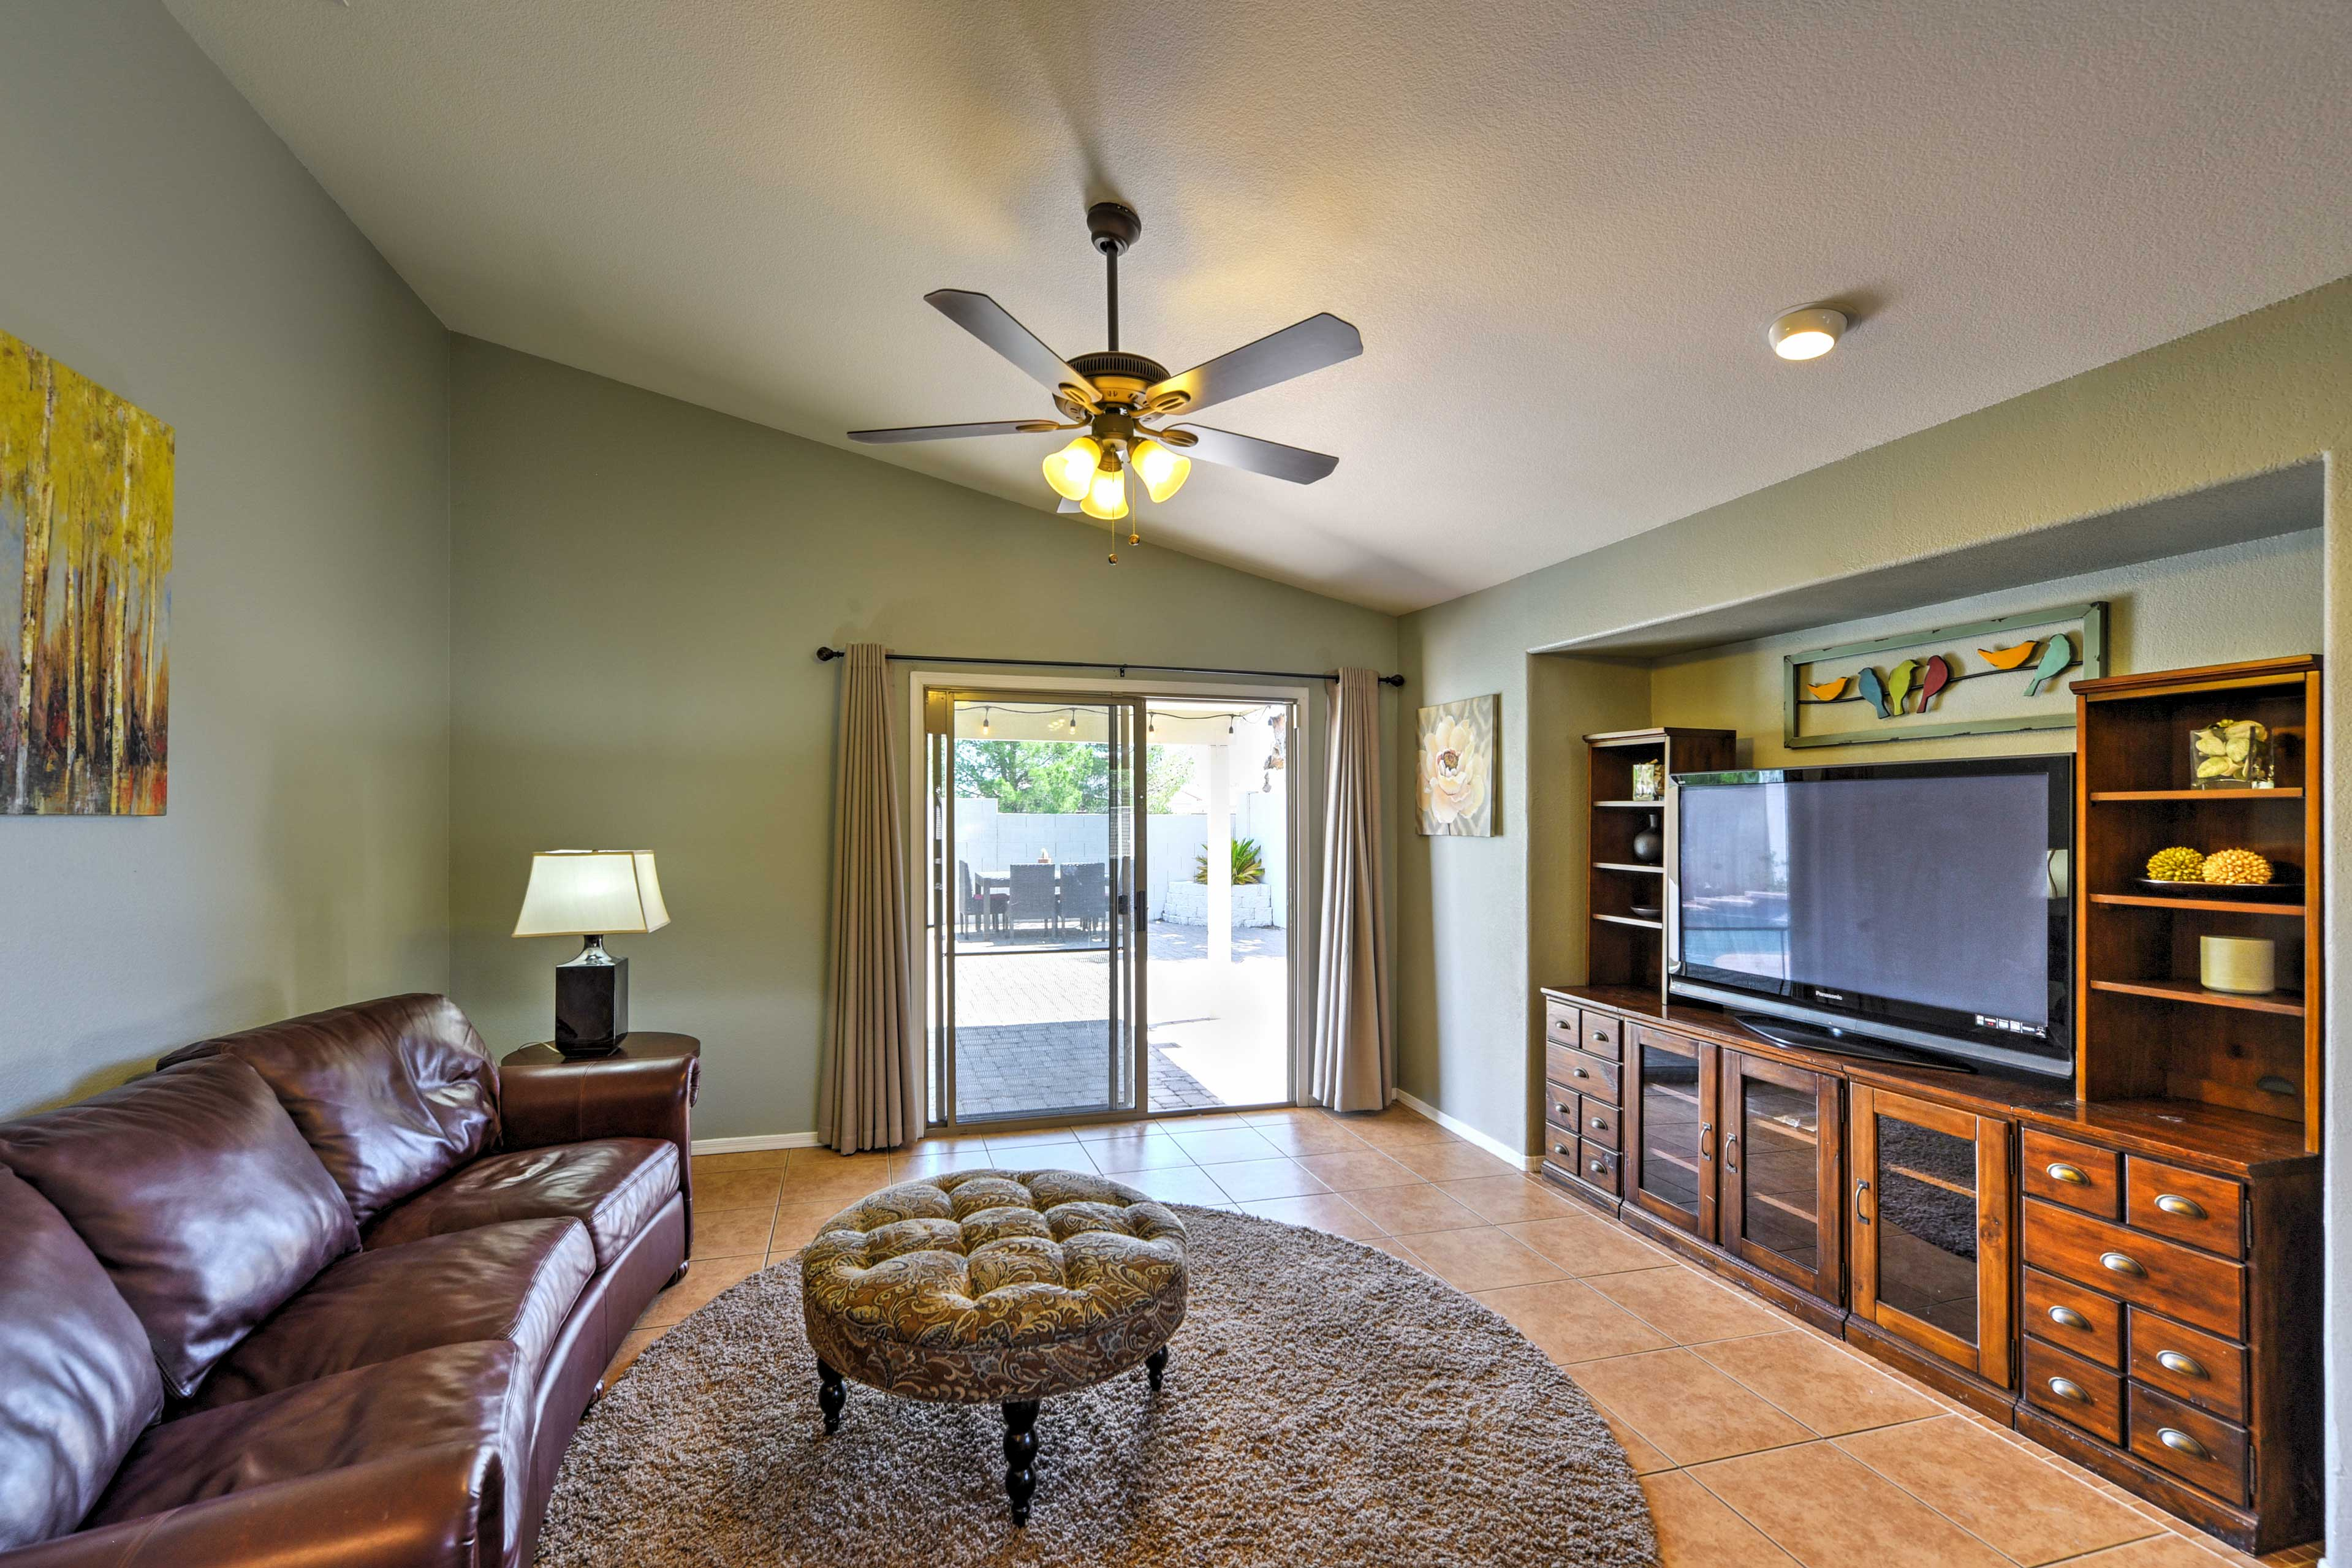 Head over to the living room to relax in front of the flat-screen TV